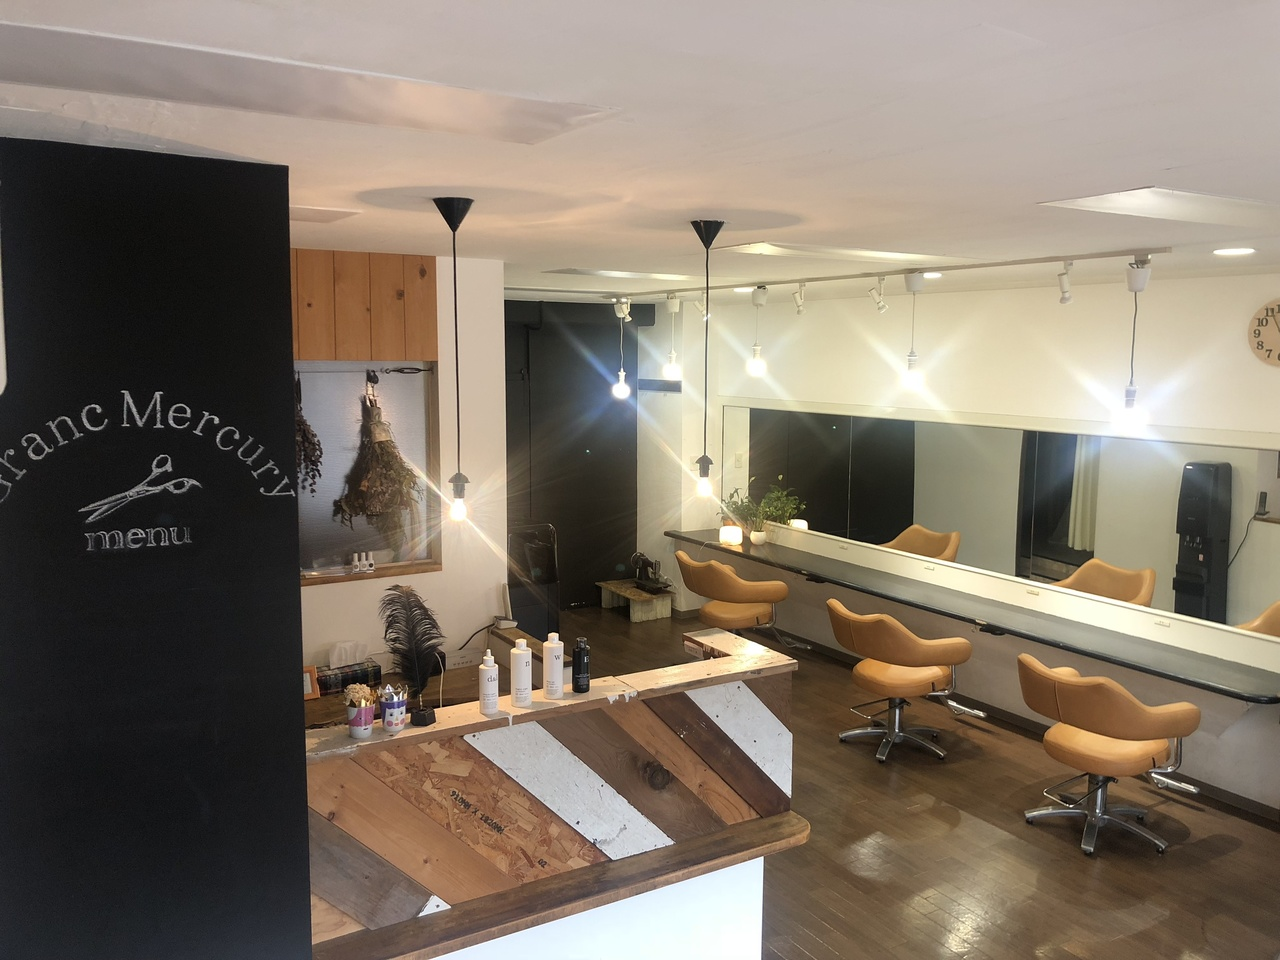 hair&eyelash&spa cannaCANNA 大分本店 予約受付